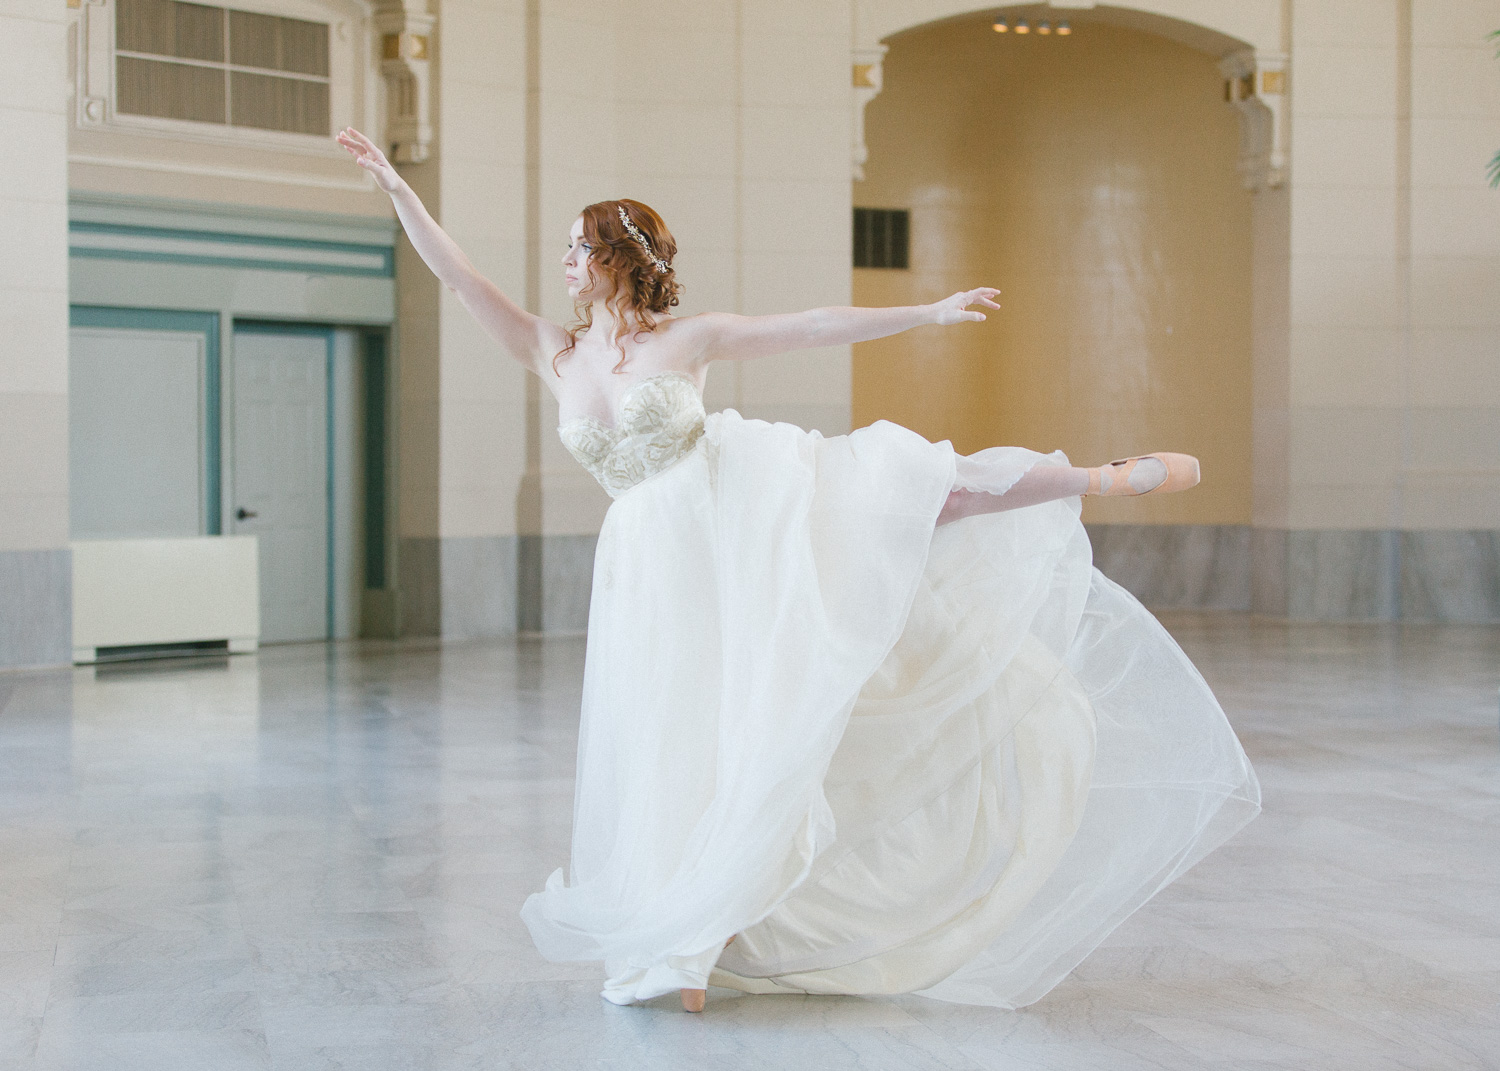 Ballet inspired styled shoot collaboration with other wedding vendors Karthika Gupta